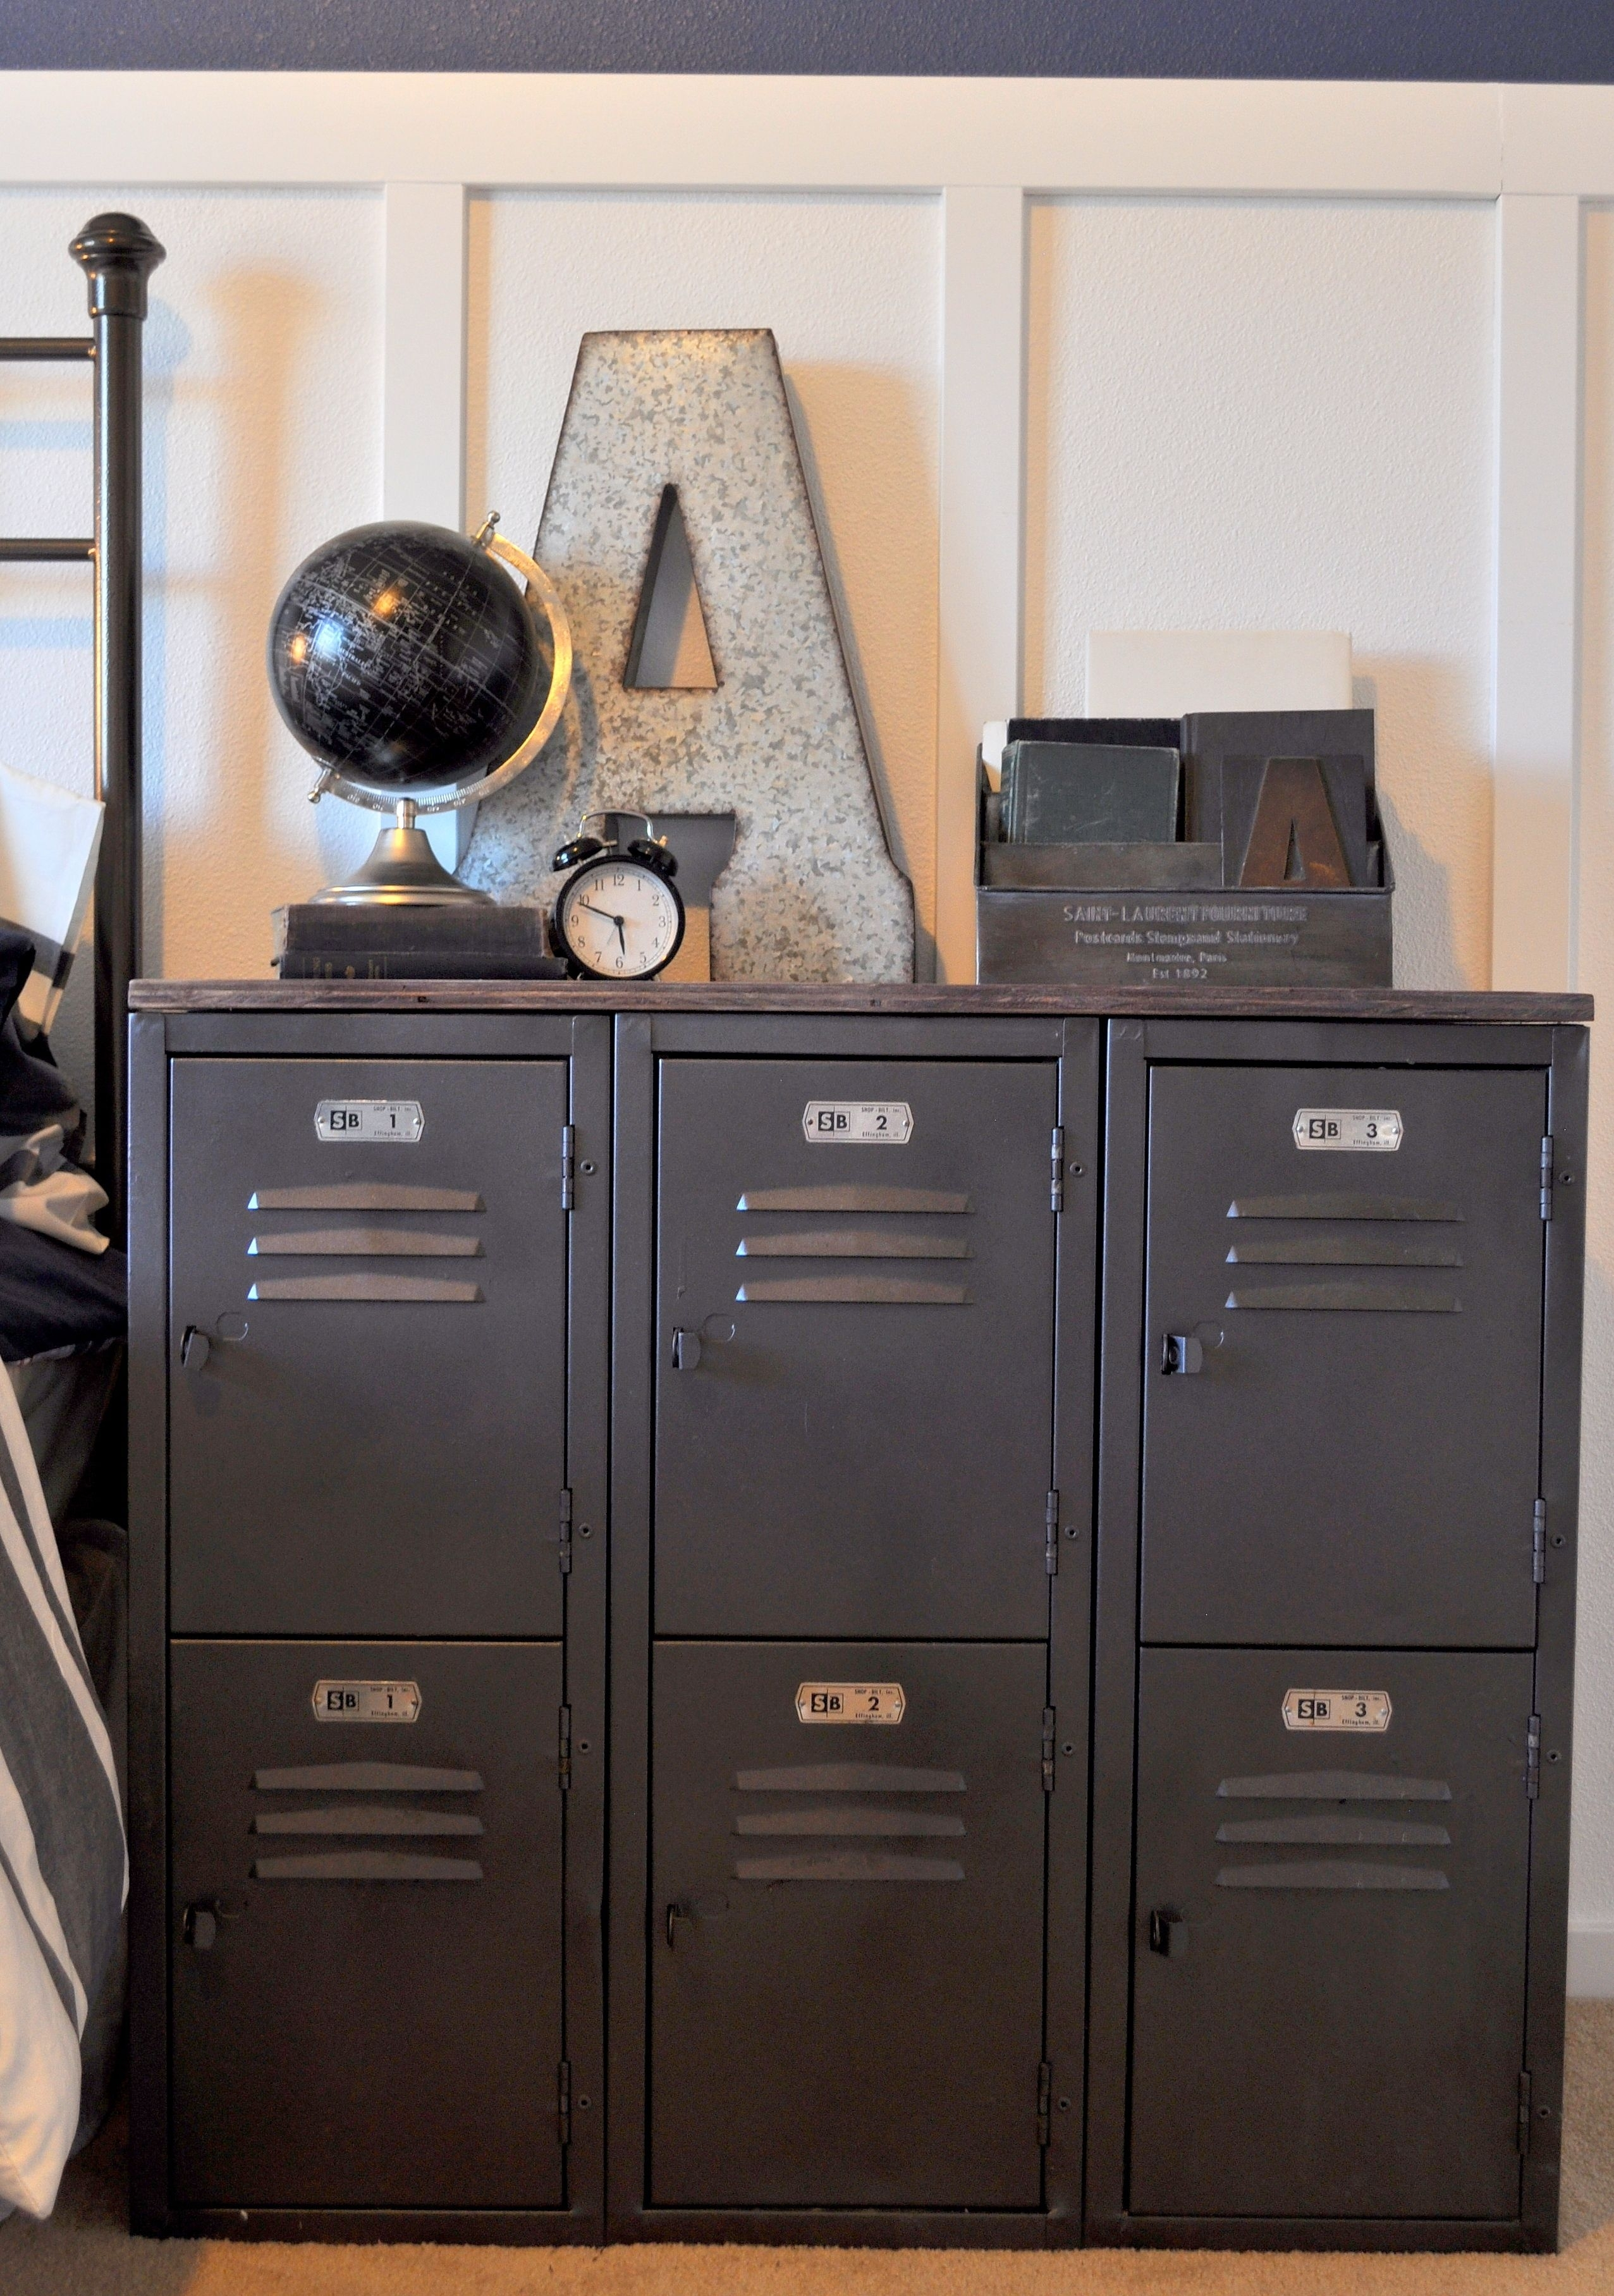 Vintage Locker Rehab Follow On Instagram @aundraskinner #lockers In intended for Magnolia Home Dylan Sideboards By Joanna Gaines (Image 30 of 30)